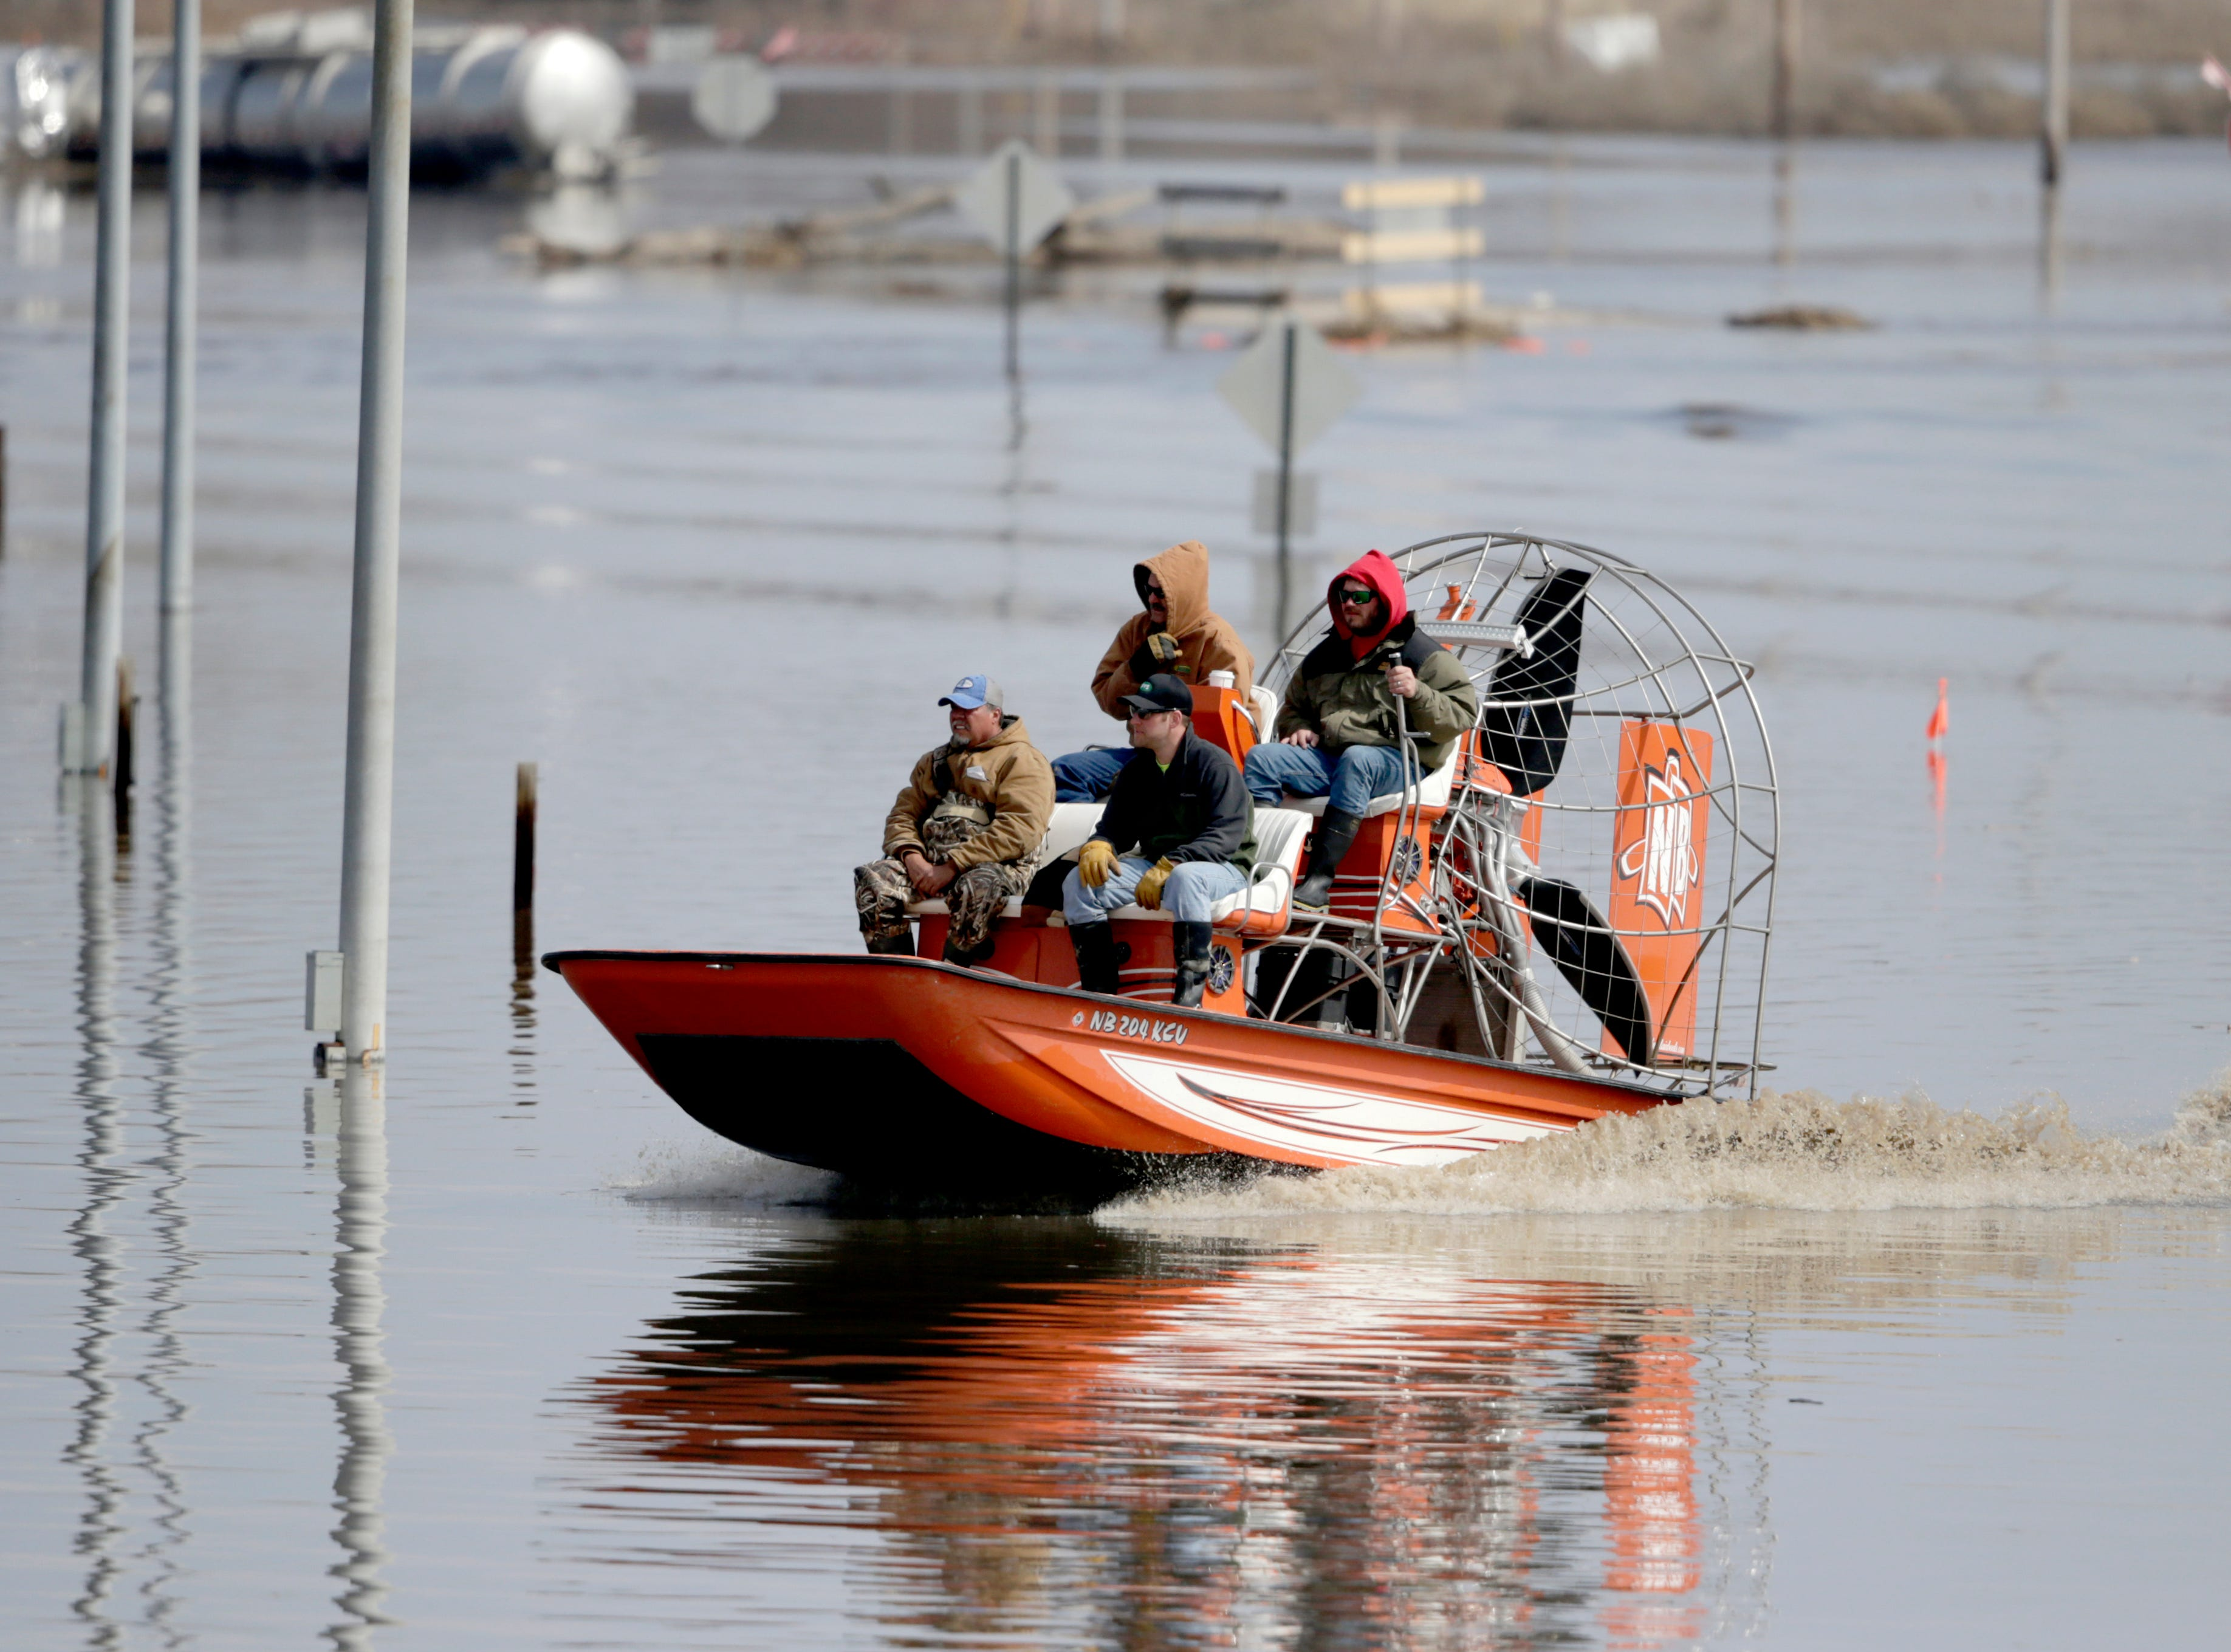 Gabe Schmidt, owner of Liquid Trucking, back right, travels by air boat with Glenn Wyles, top left, Mitch Snyder, bottom right, and Juan Jacobo, bottom left, as they survey damage from the flood waters of the Platte River, in Plattsmouth, Neb., on March 17, 2019.